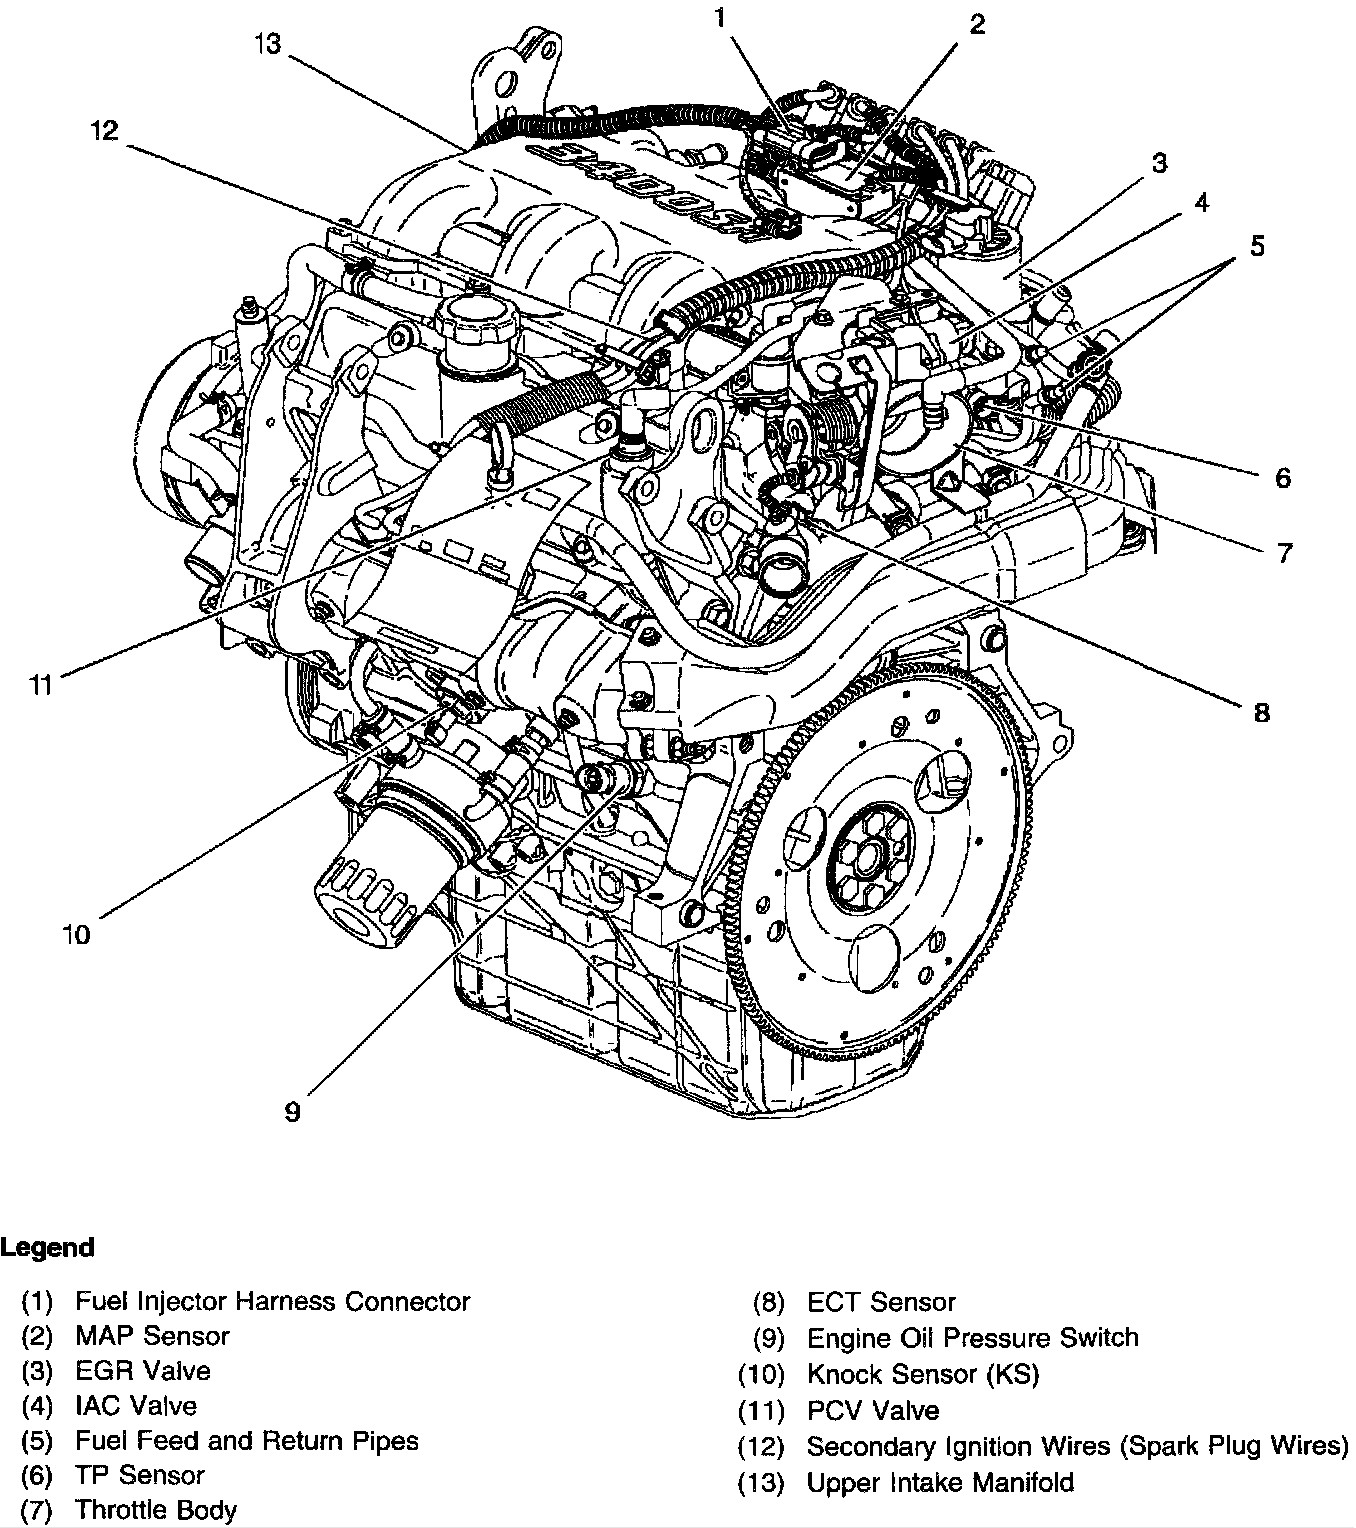 pontiac 3 4l v6 engine diagram experts of wiring diagram u2022 rh evilcloud  co uk 3100 SFI V6 Engine Diagram 960X720 209Kb JPEG Geral Motors 3.1 V6  Engine